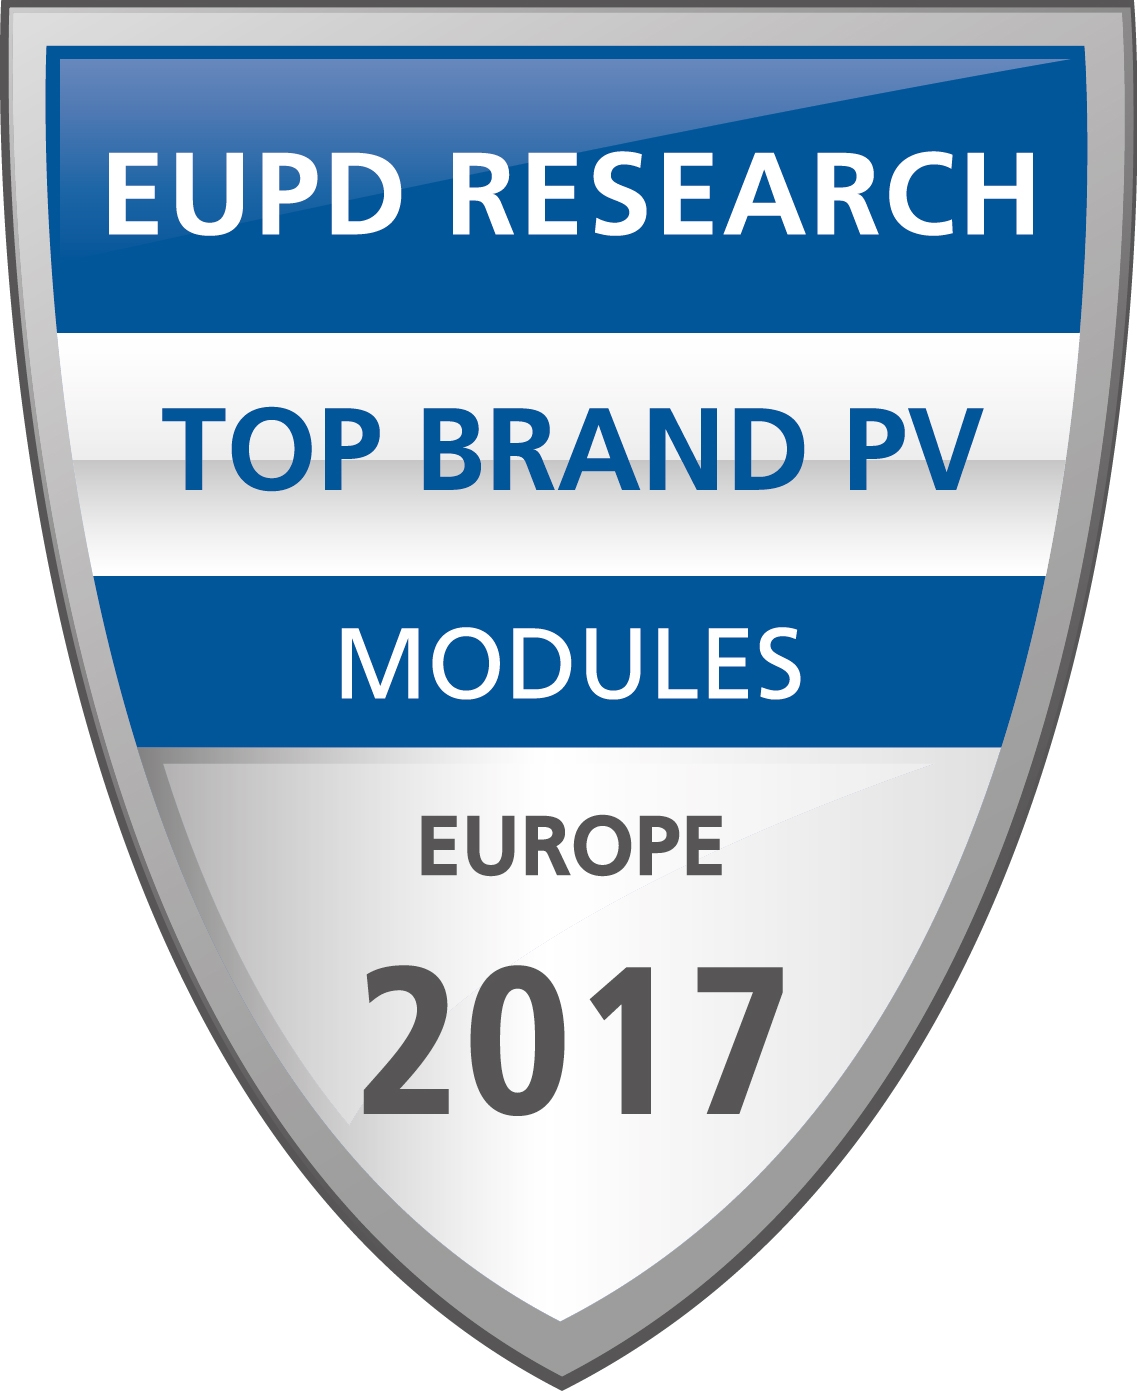 EUPD Research Siegel Modules